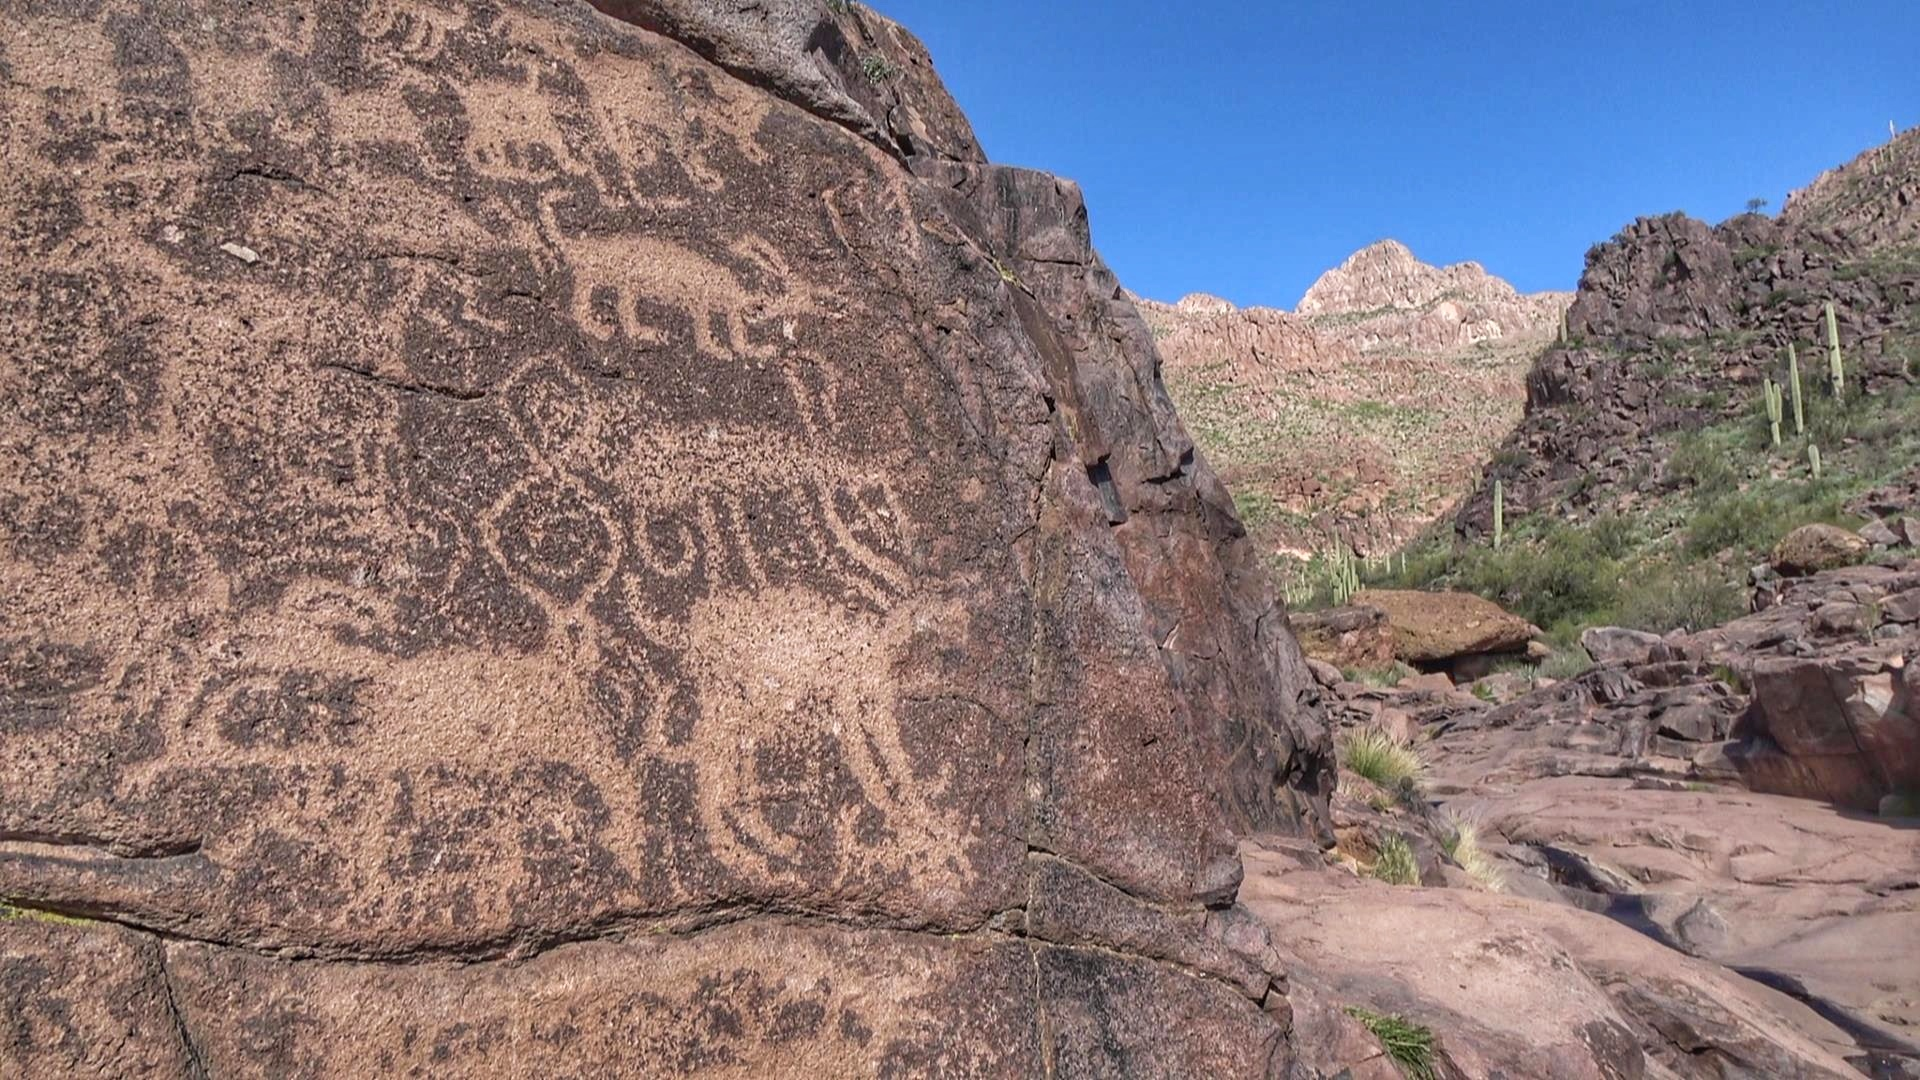 Hieroglyphic Trail – Arizona RV Travel Adventures